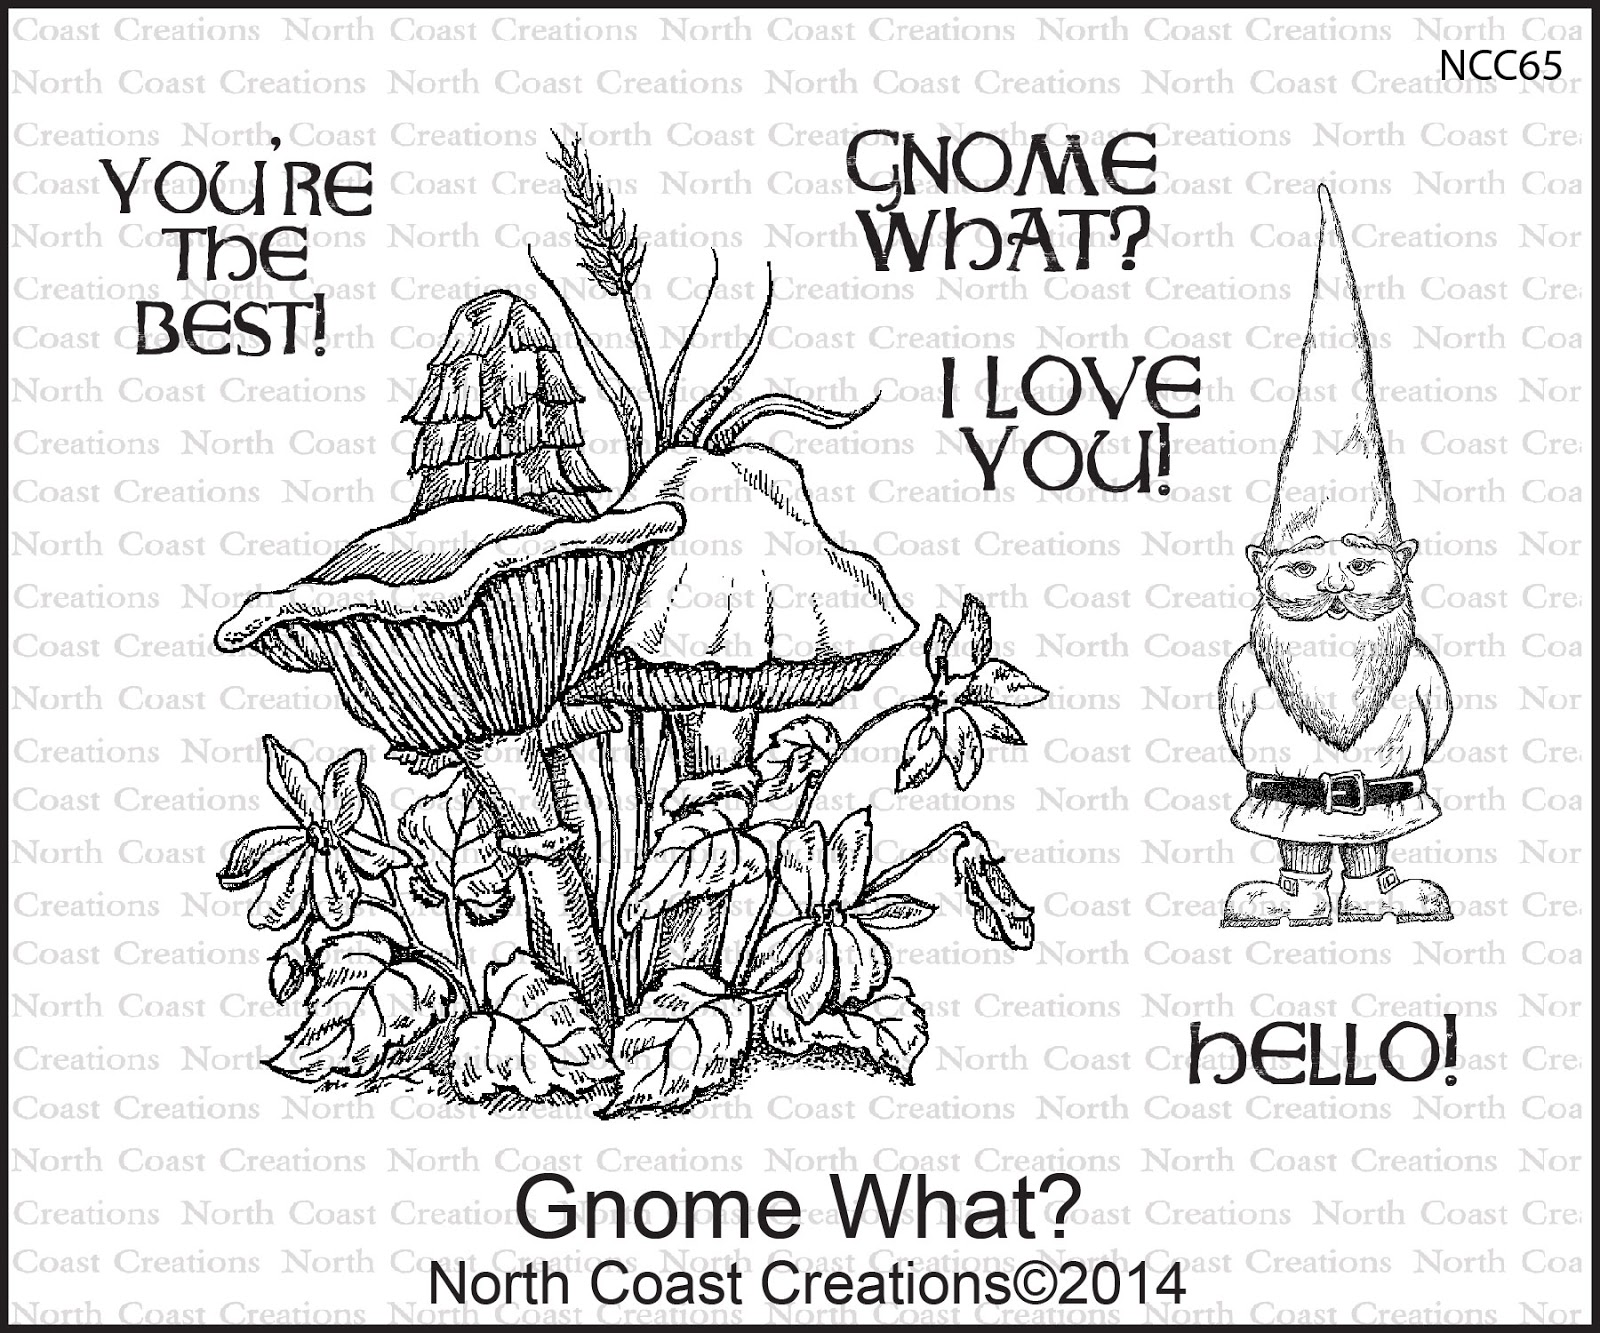 Stamps - North Coast Creations Gnome What